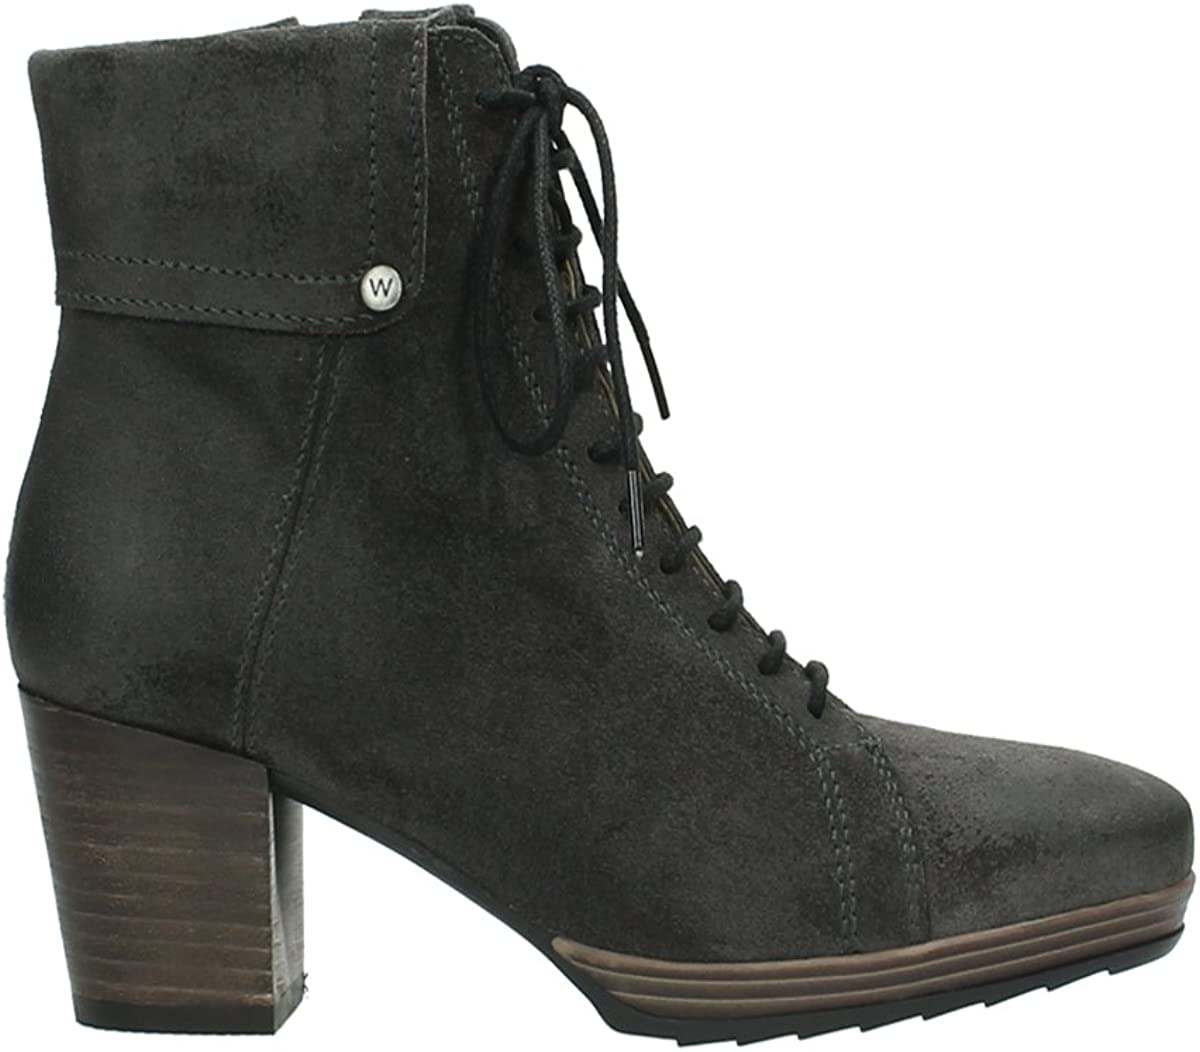 Wolky Womens Popular overseas 7979 Pump Popular shop is the lowest price challenge Aya